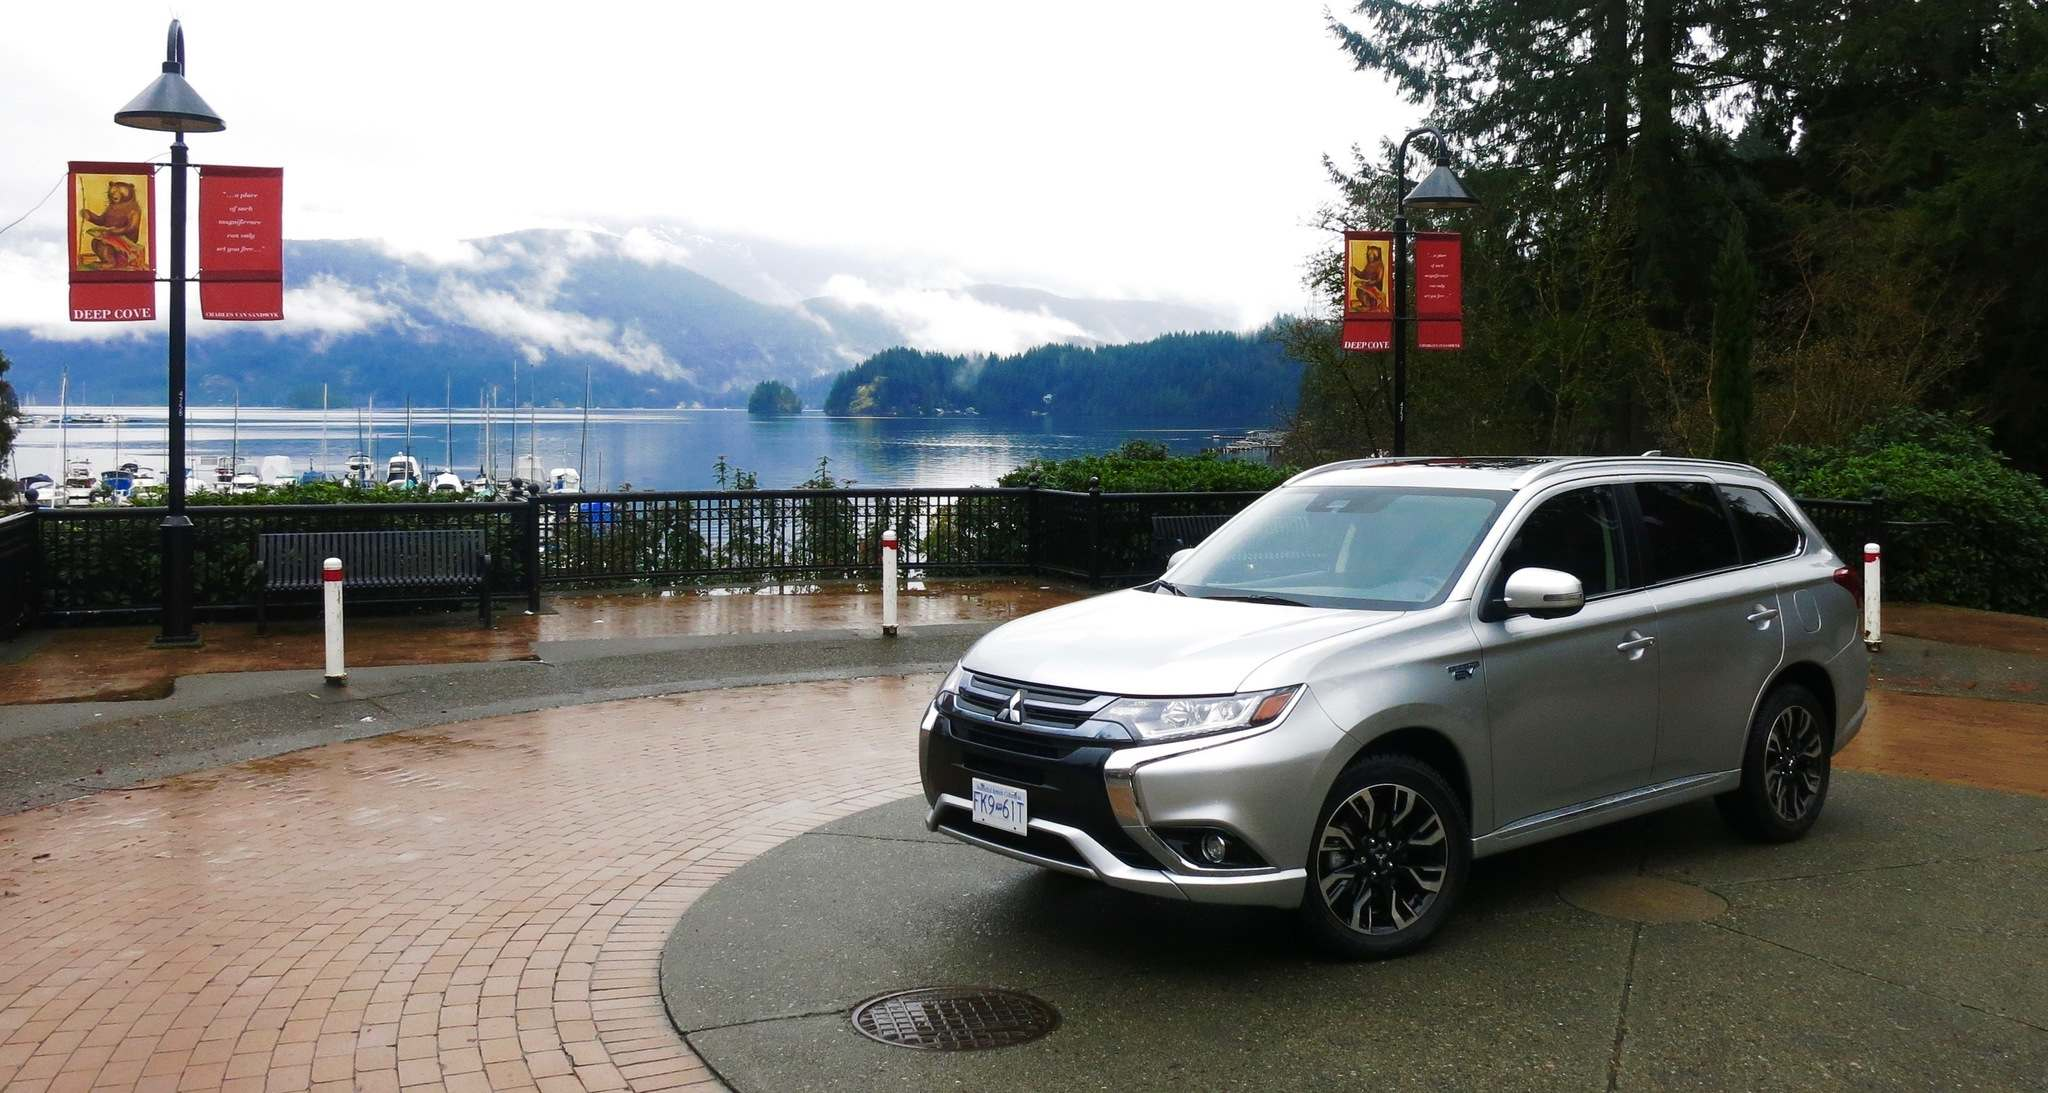 KELLY TAYLOR / WINNIPEG FREE PRESSThe 2018 Mitsubishi Outlander PHEV offers excellent fuel economy but at a $14,000 premium over gasoline models.